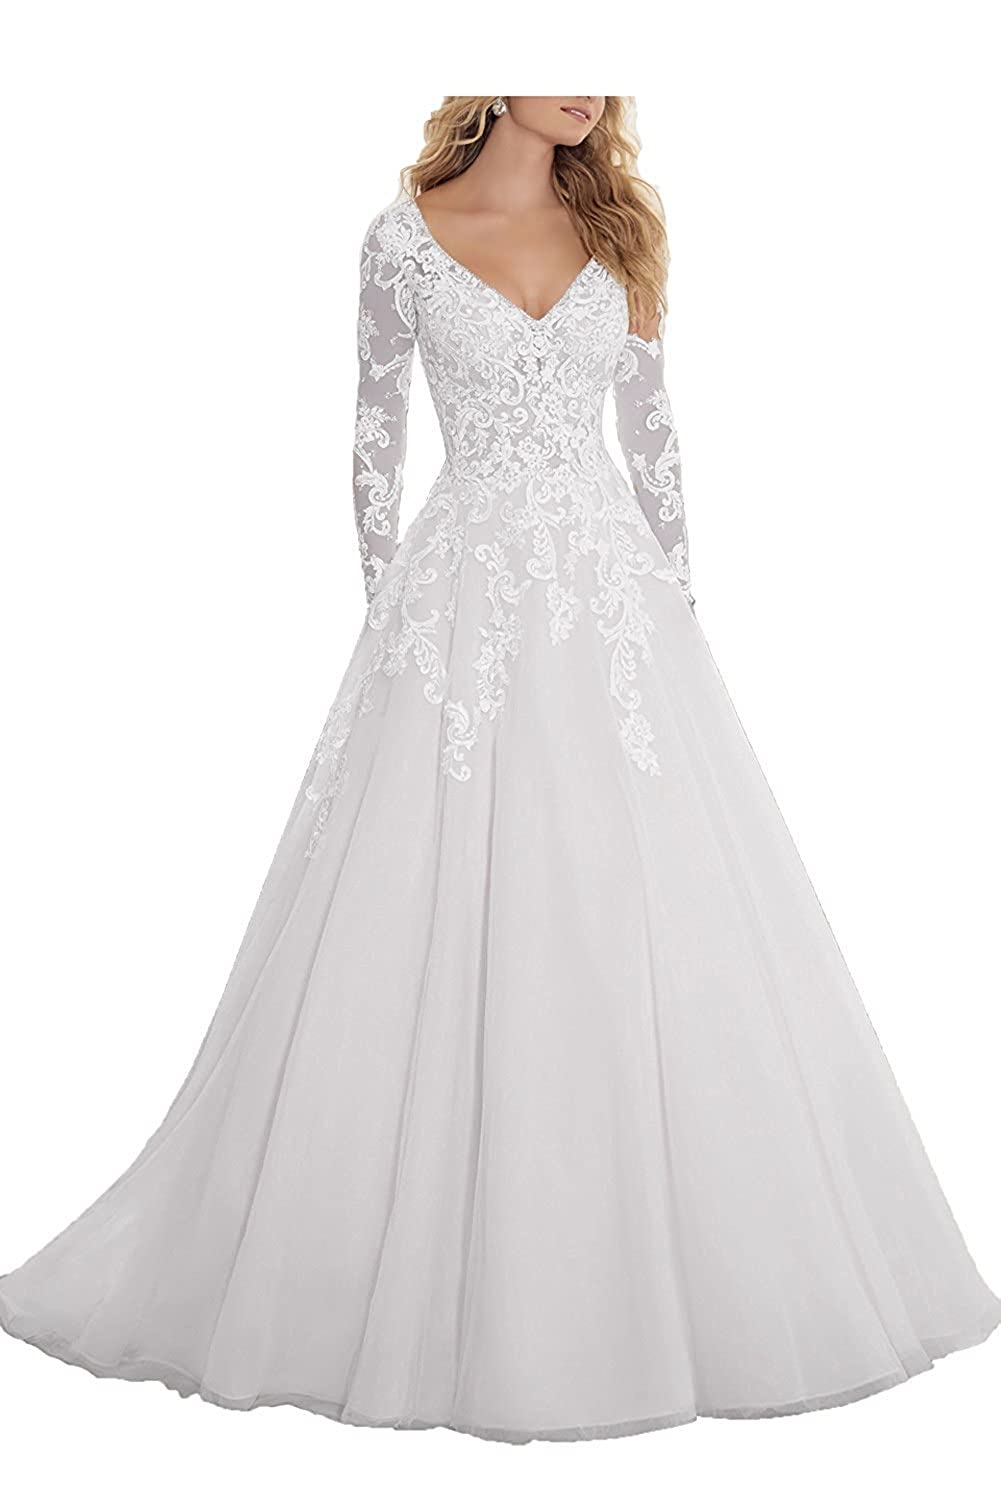 079d9b774756 Amazon.com  Abaowedding Women s Wedding Dress for Bride Long Beaded Lace  Appliques V Neck Bridal Gown  Clothing